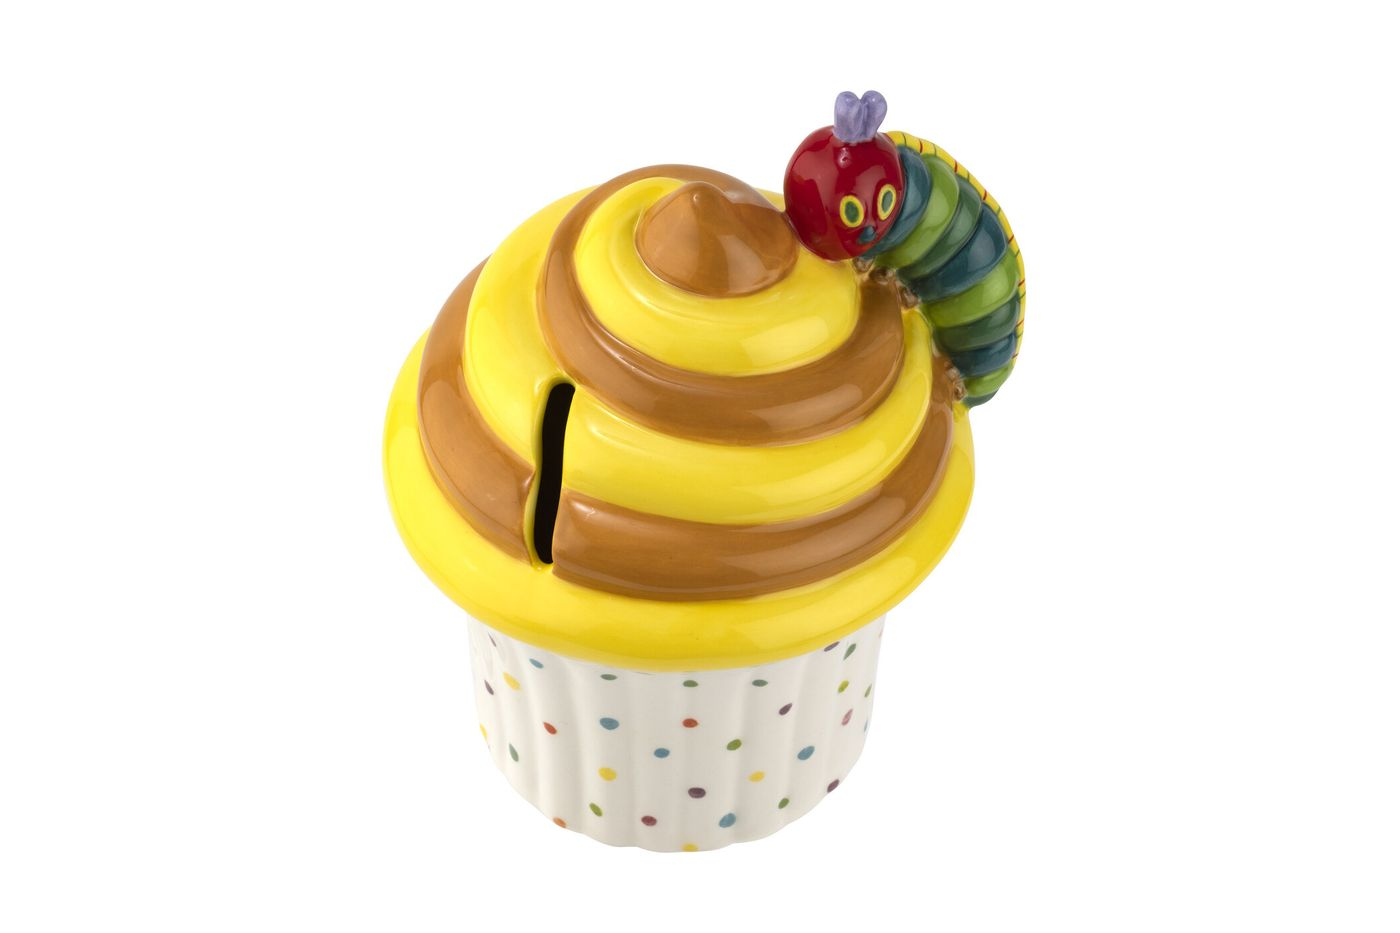 Portmeirion The Very Hungry Caterpillar by Eric Carle Money Box Cupcake thumb 2